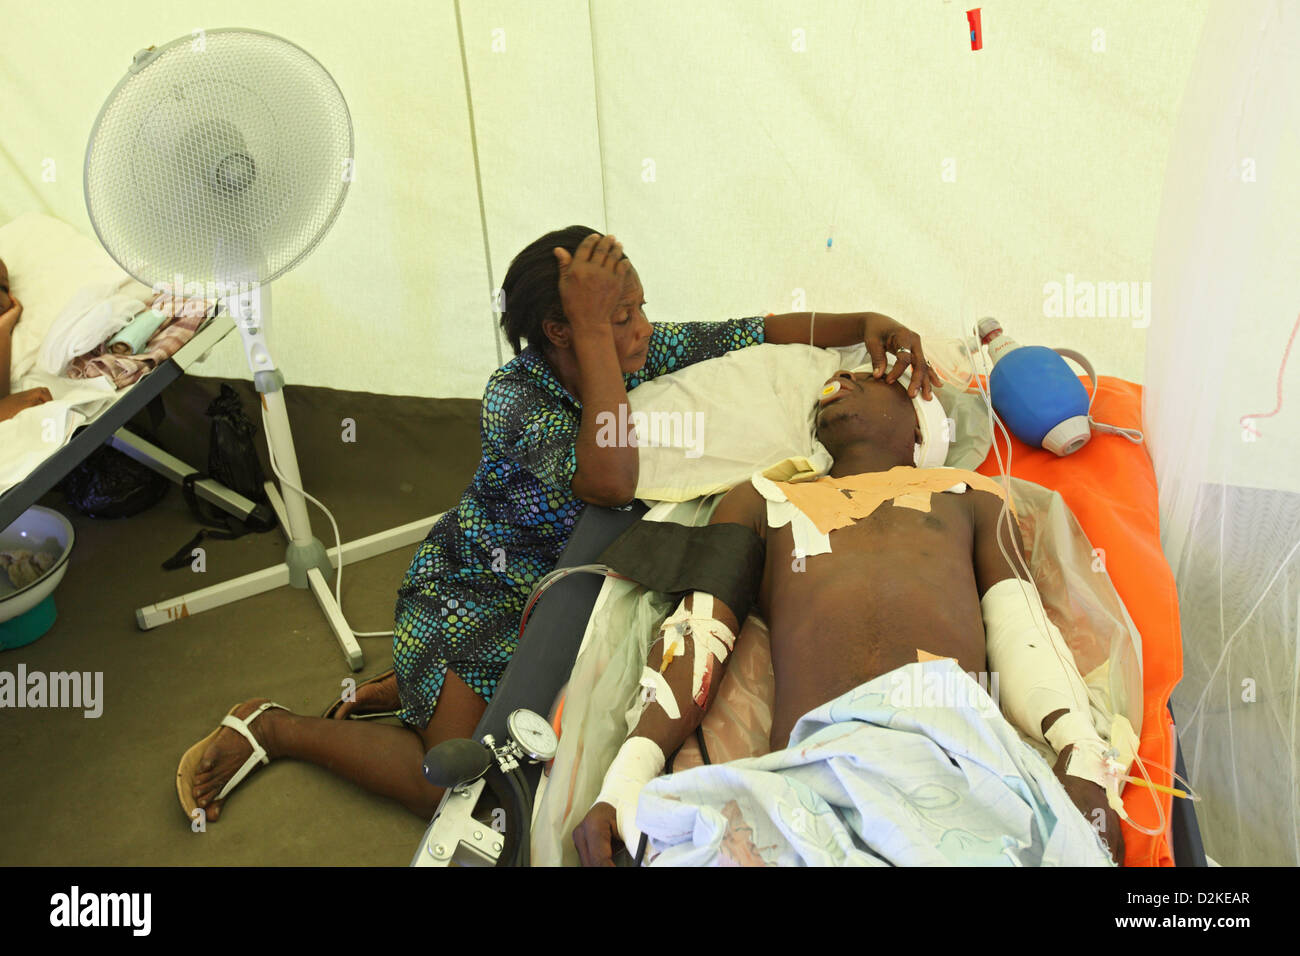 Carrefour, Haiti, a kneeling beside a wounded relatives in the intensive care unit - Stock Image